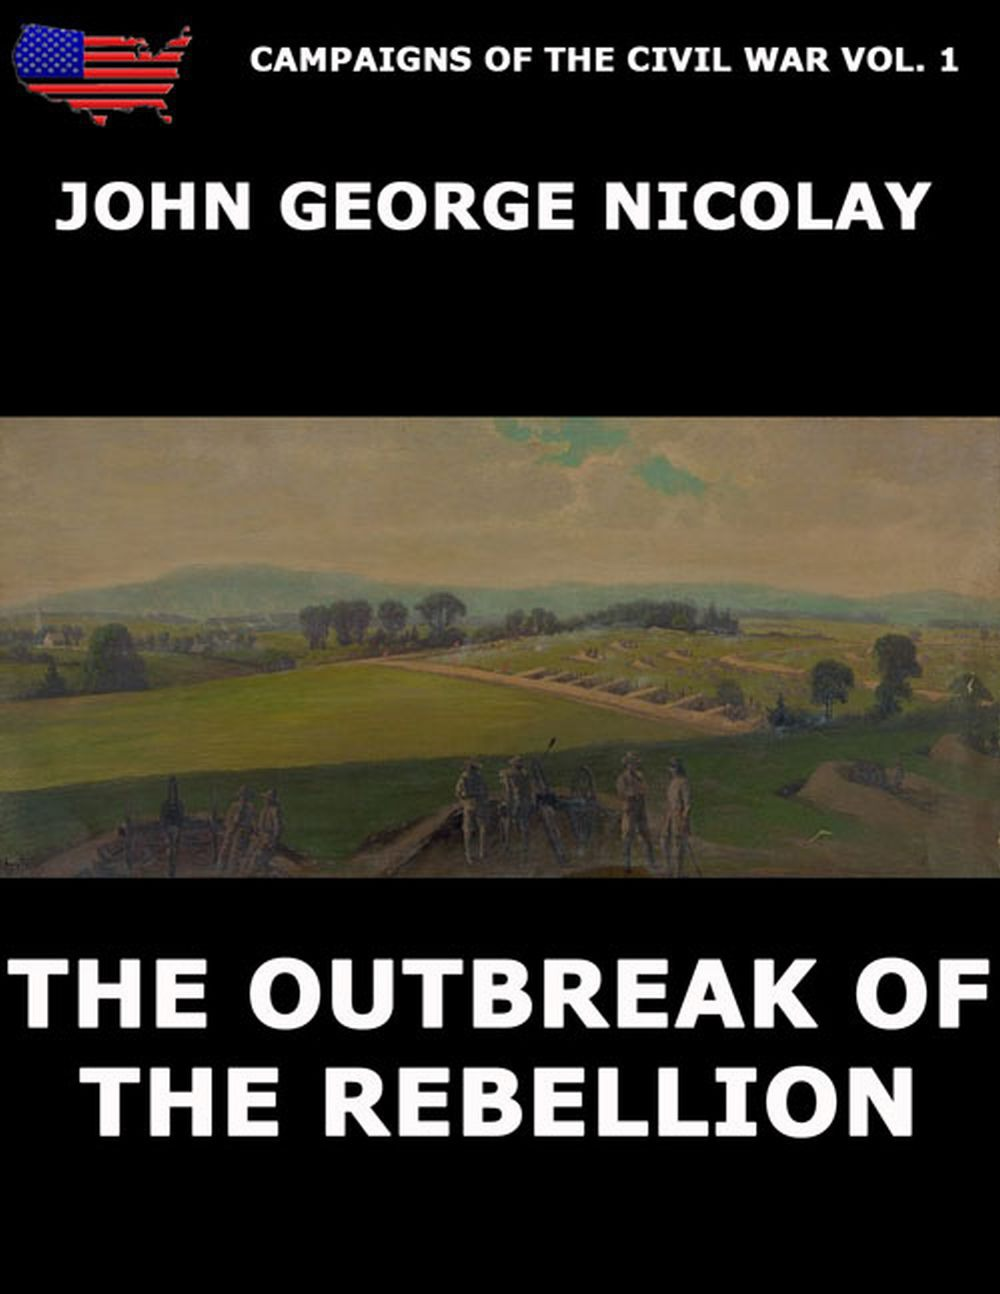 John G. Nicolay Campaigns Of The Civil War Vol. 1 - The Outbreak Of Rebellion outbreak